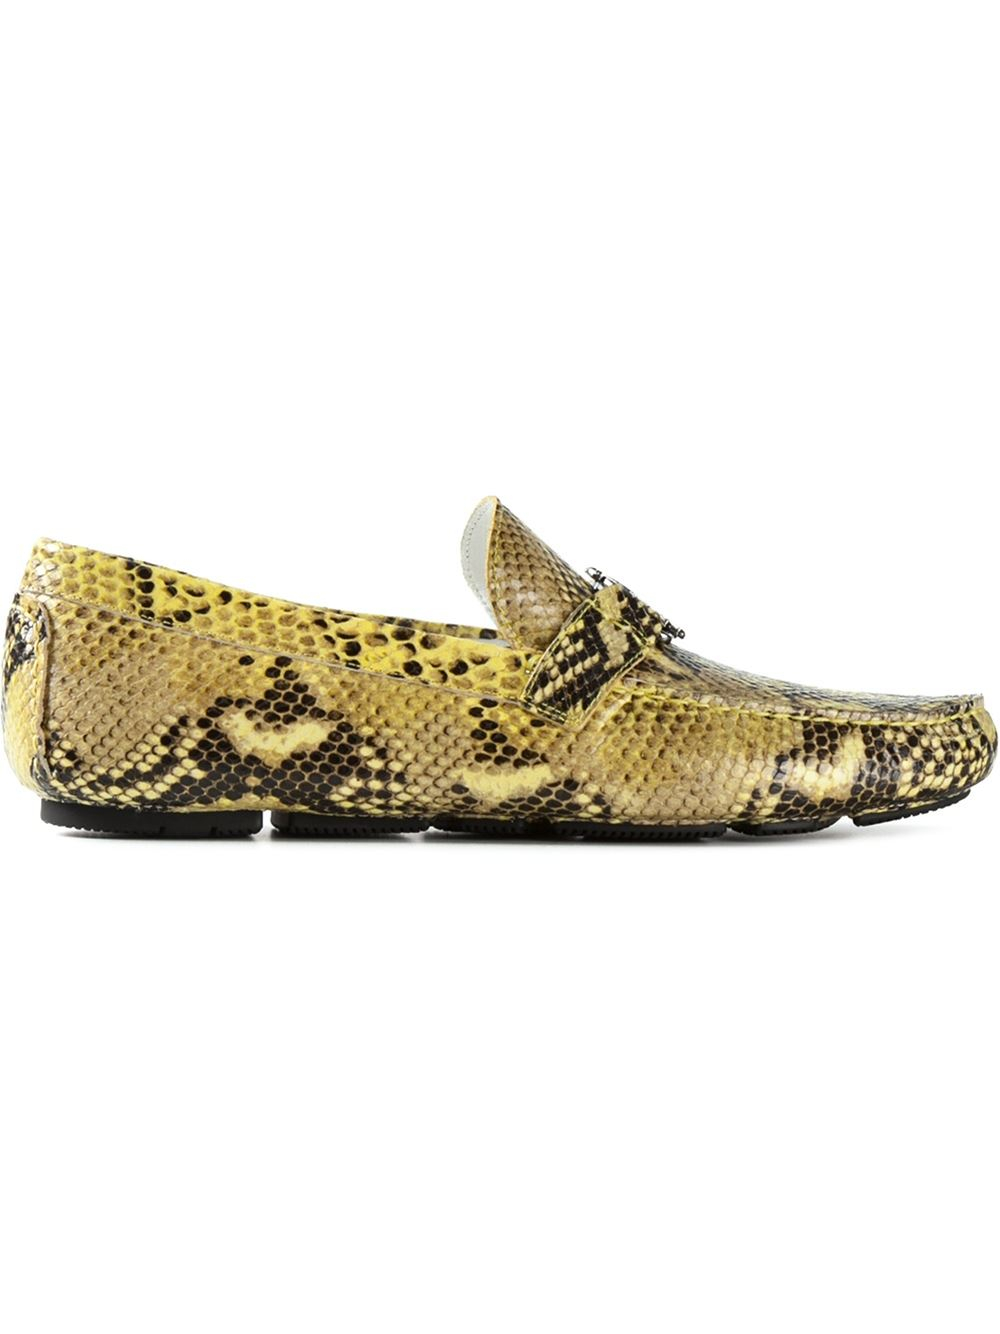 a2f5d72f4b8 Lyst - Roberto Cavalli Python Skin-Effect Driving Shoes in Yellow ...